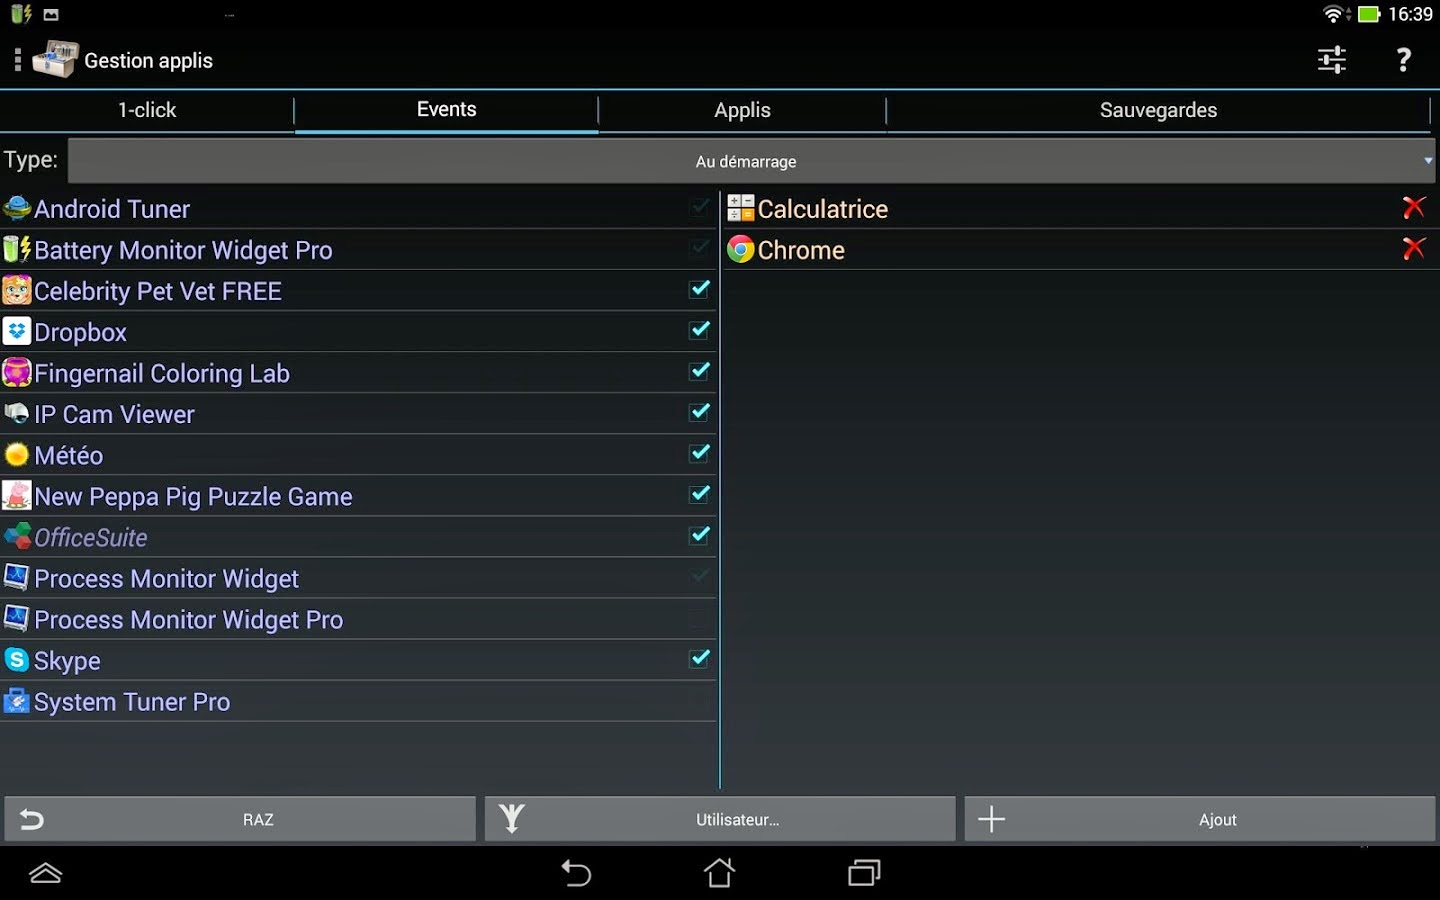 System Tuner Pro Android App Download,all in one highly optimized app!